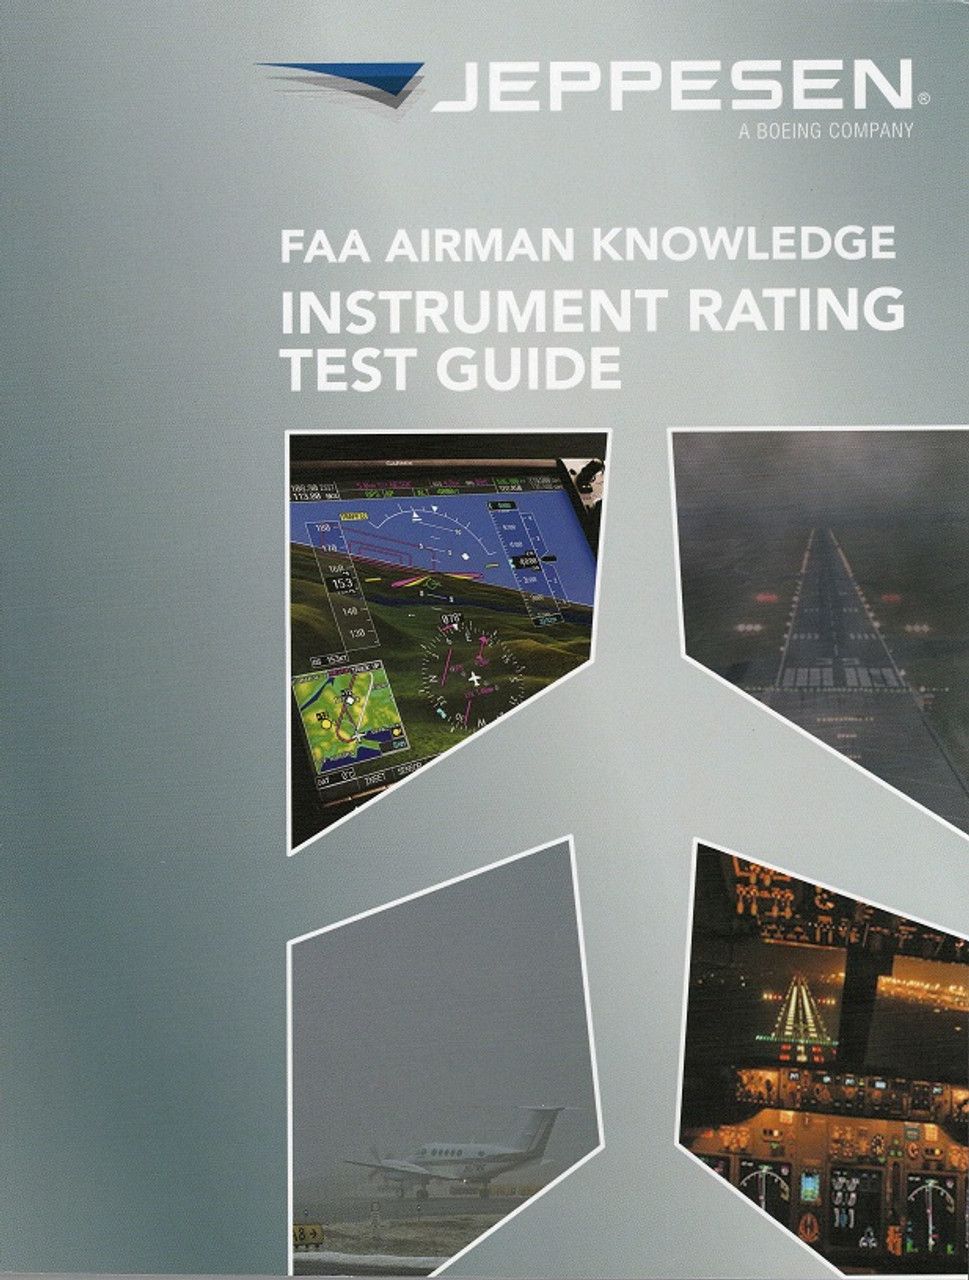 Jeppesen Instrument Rating Airmen Knowledge Test Guide